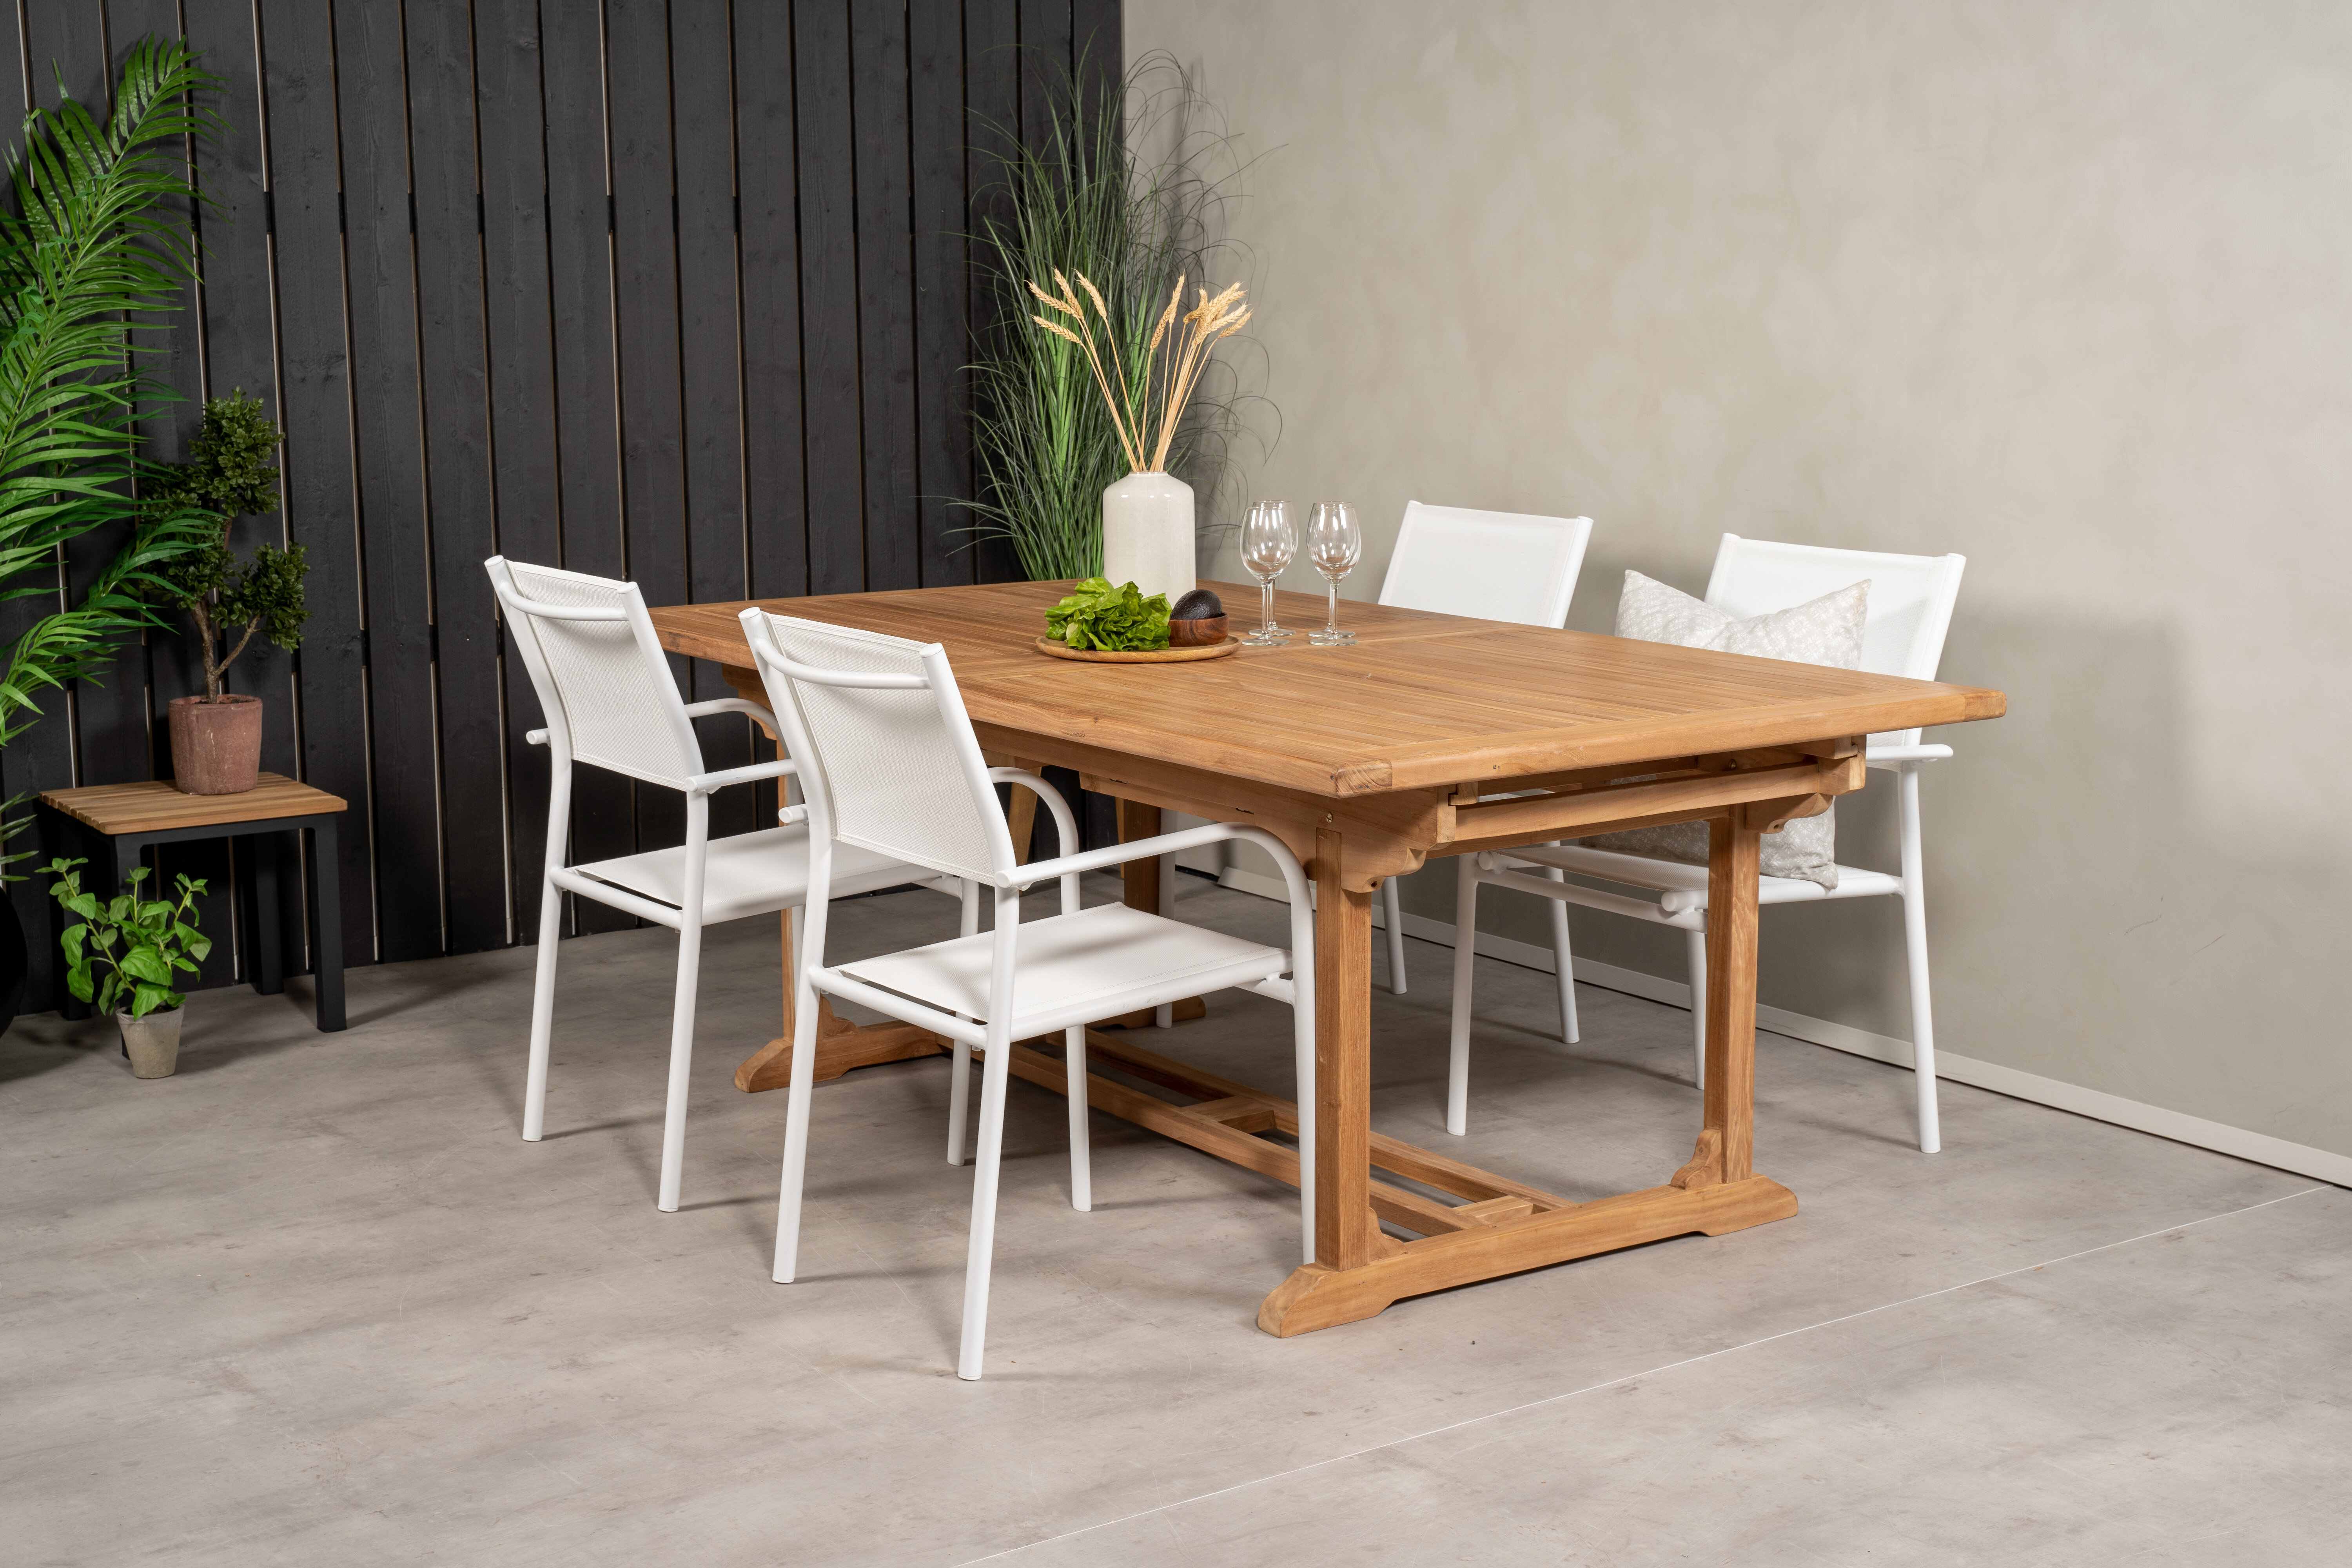 Sol 72 Outdoor Baek 4 Seater Dining Set Wayfair Co Uk